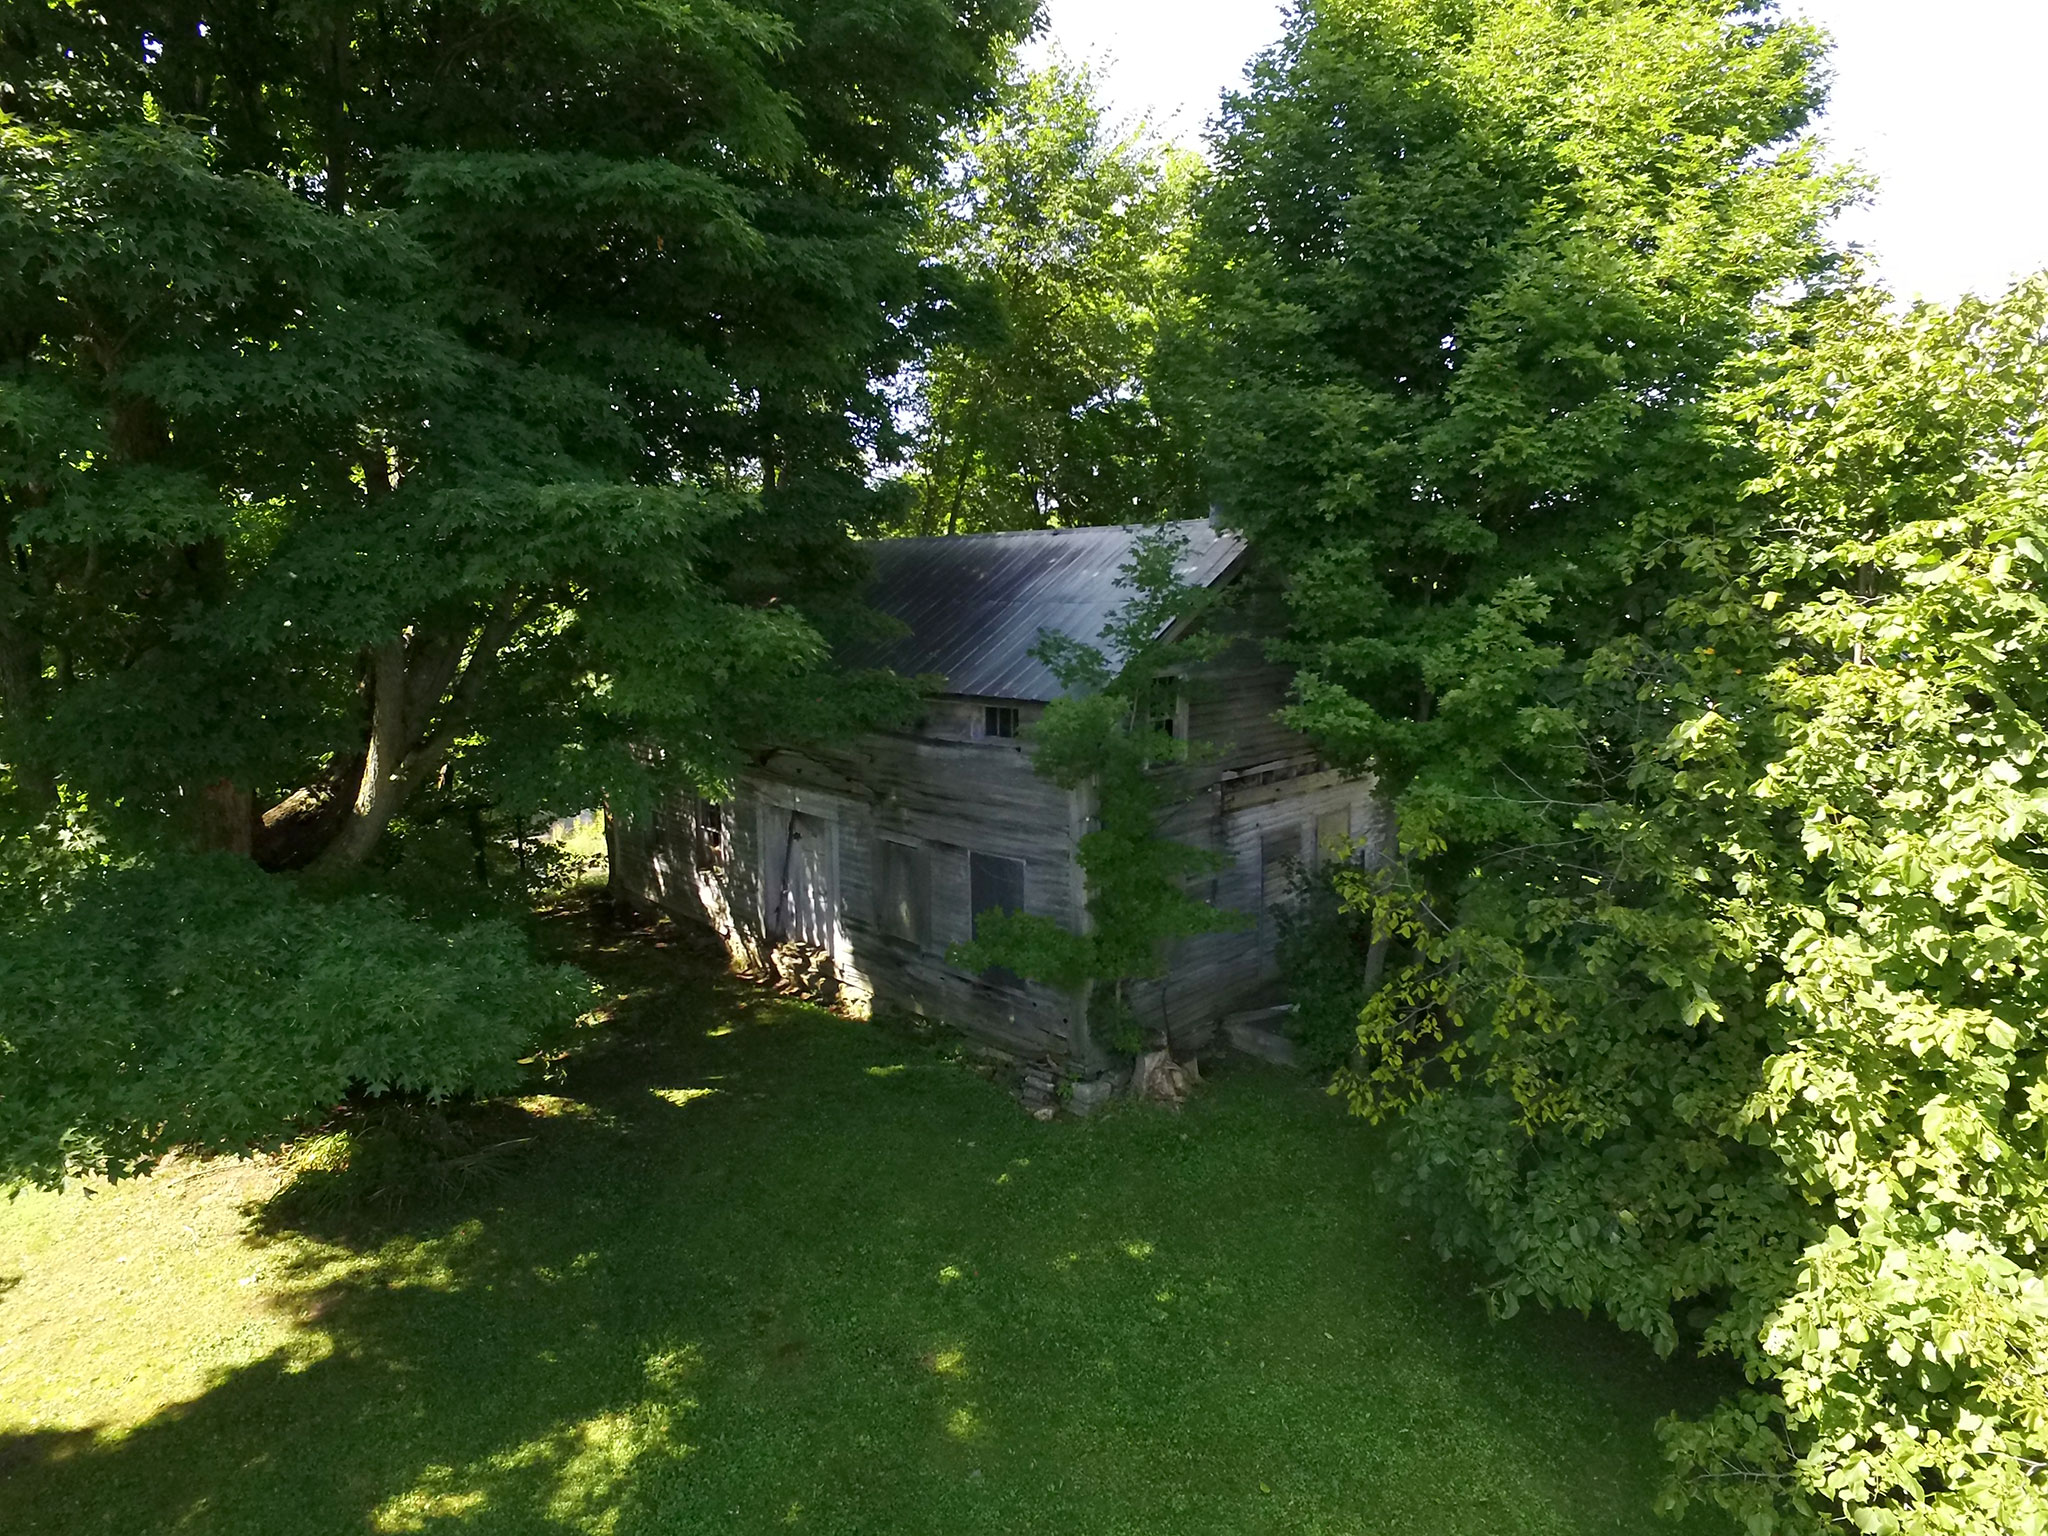 Aerial photo of abandoned house at property in Canajoharie, New York.